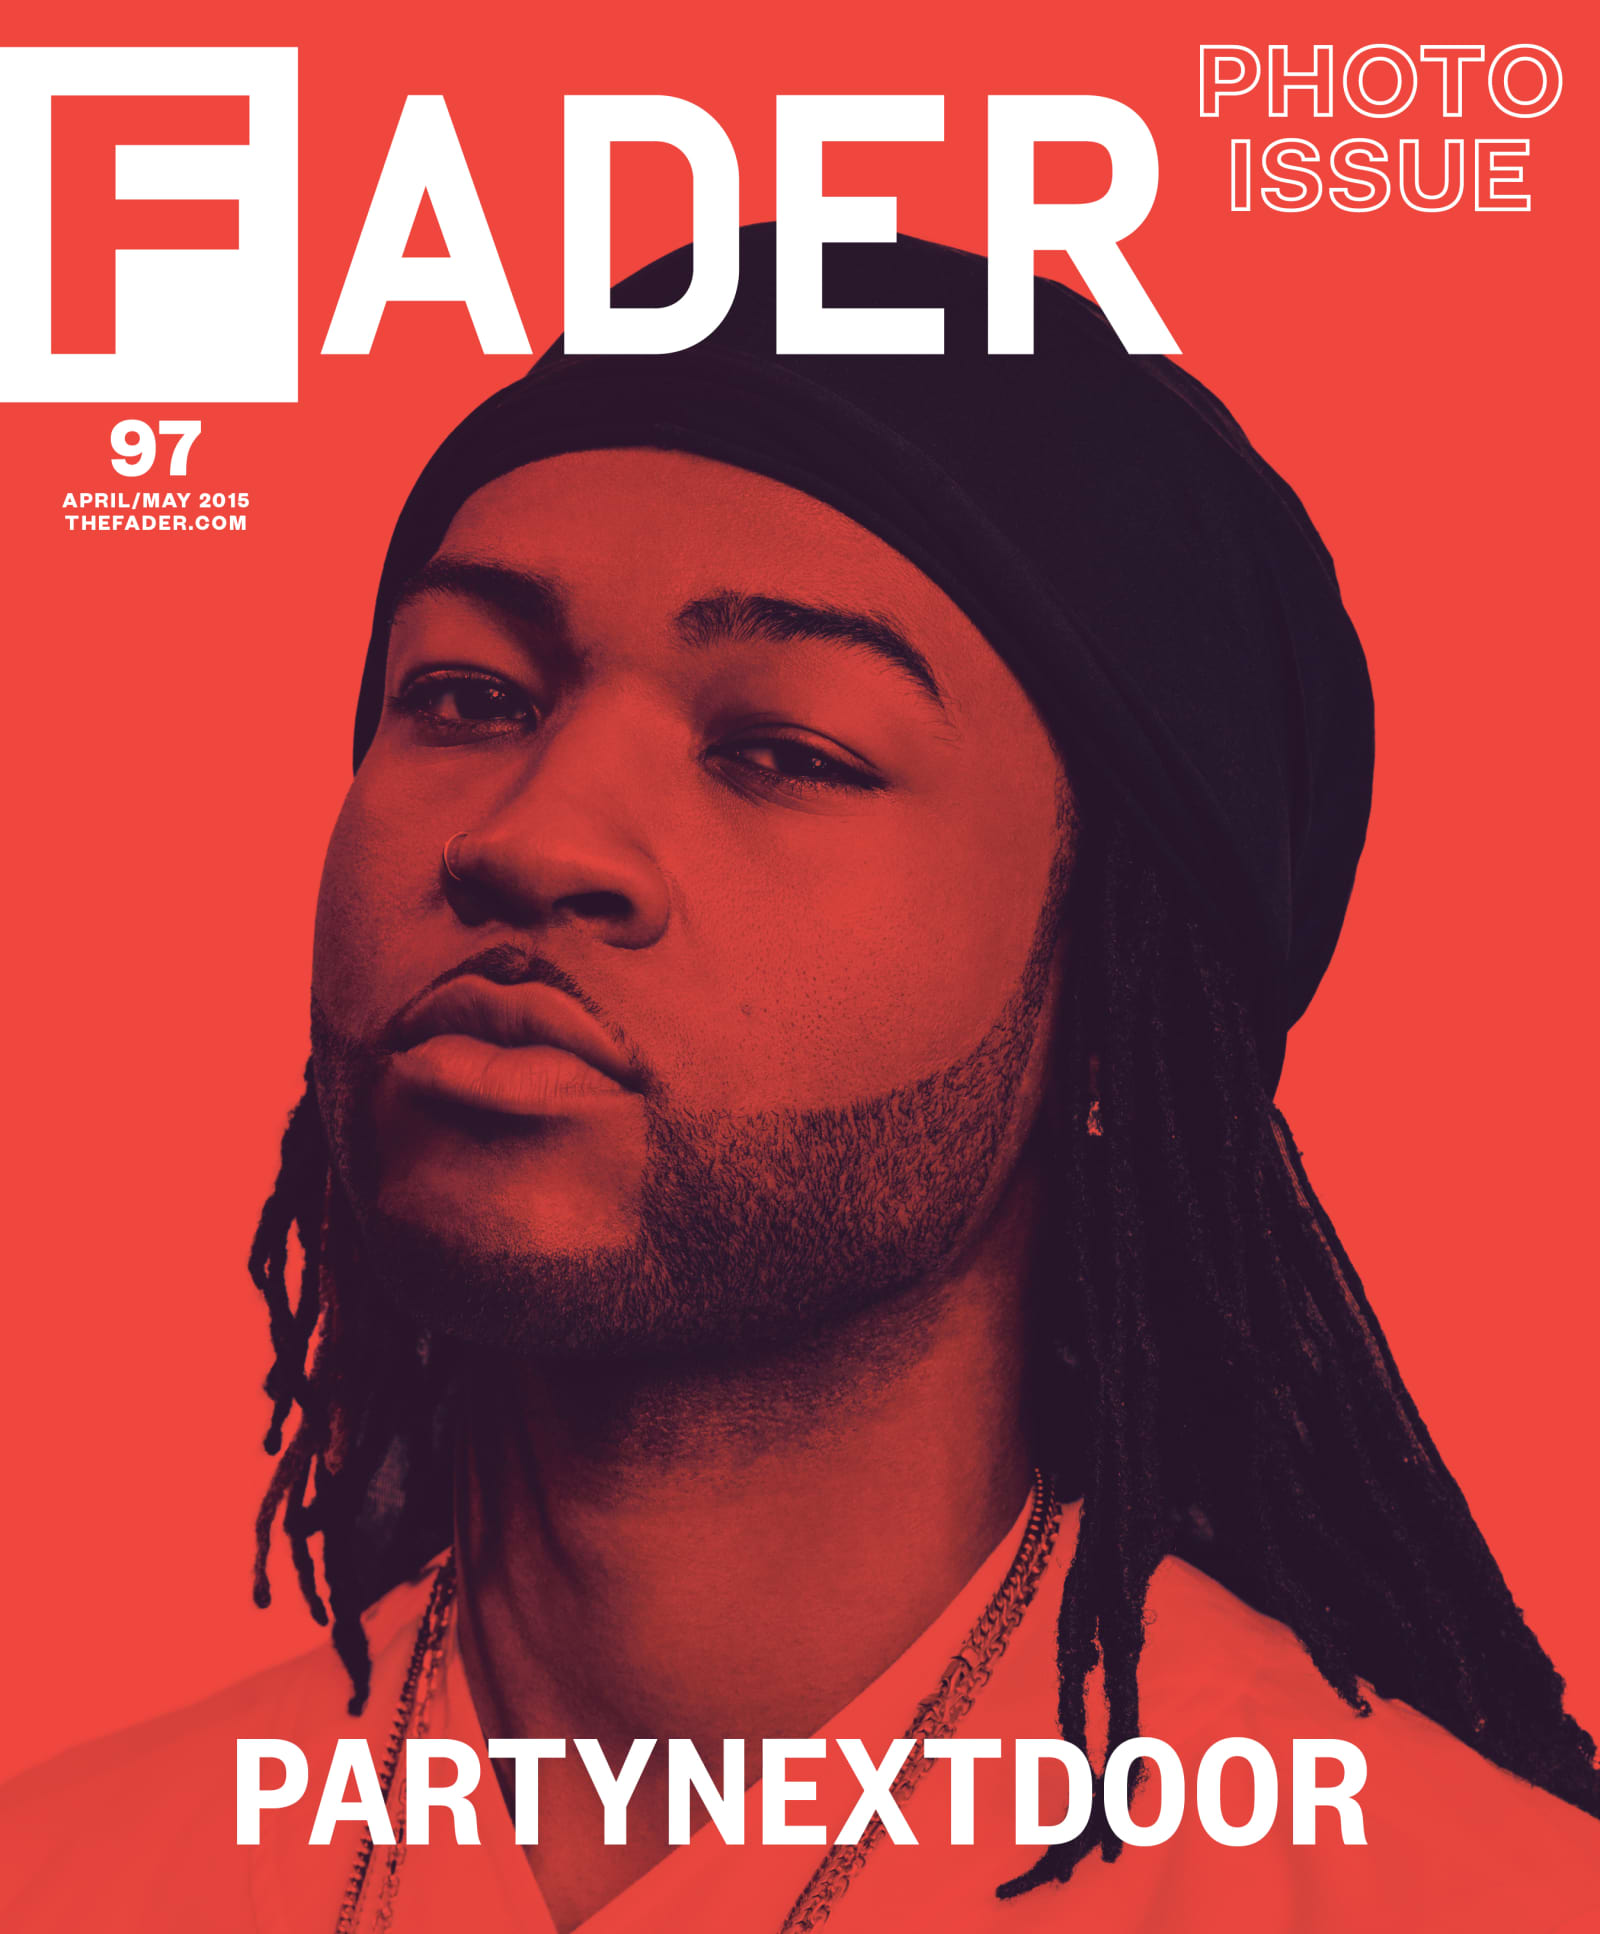 PARTYNEXTDOOR Speaks About His Music For The First Time